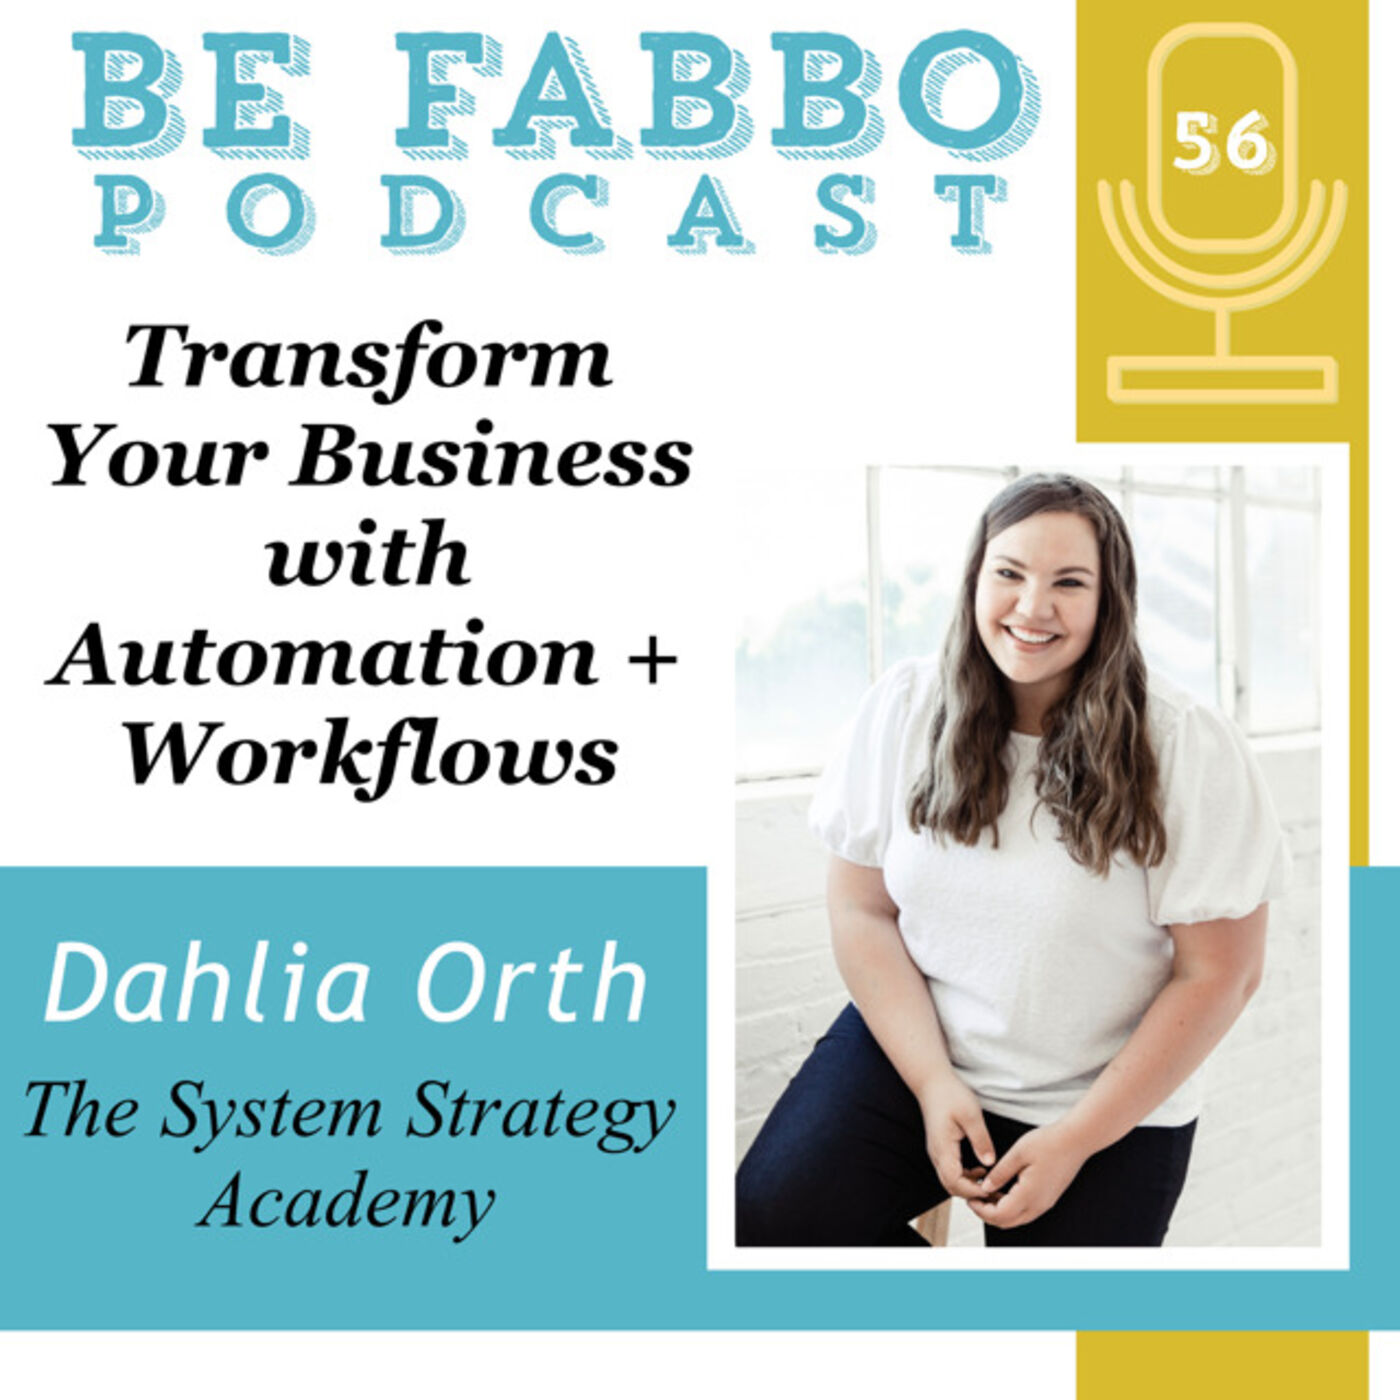 Transform Your Business with Automation + Workflows- Dahlia Orth